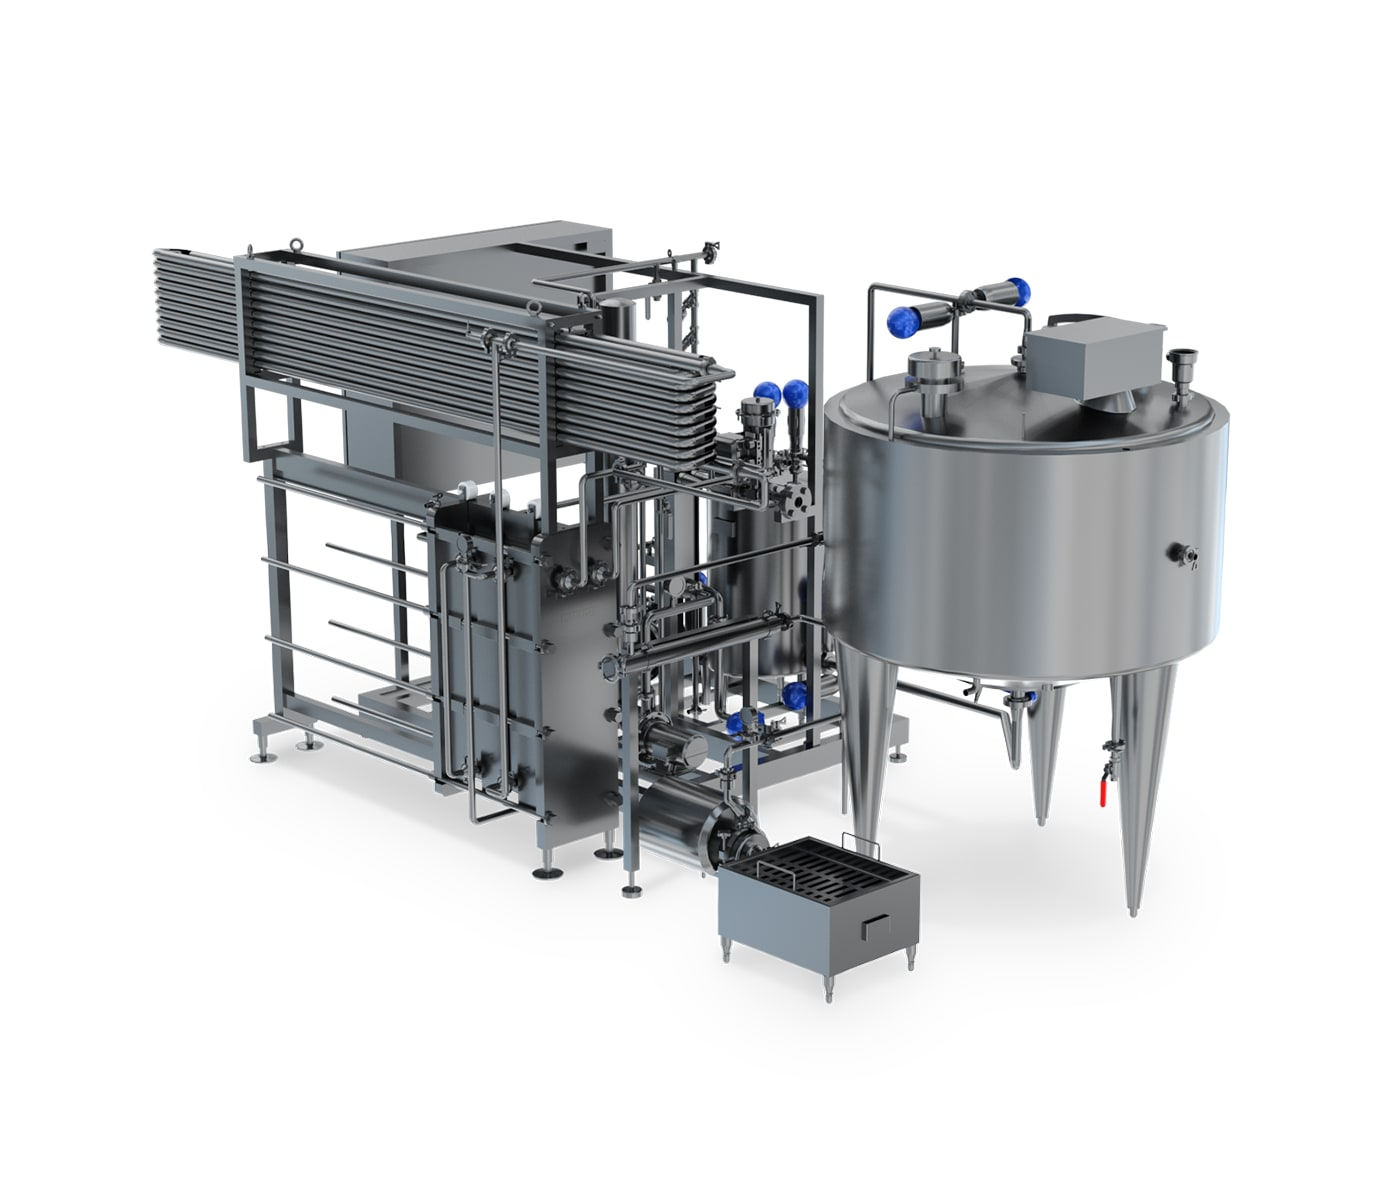 New product for small- and medium sized egg processors